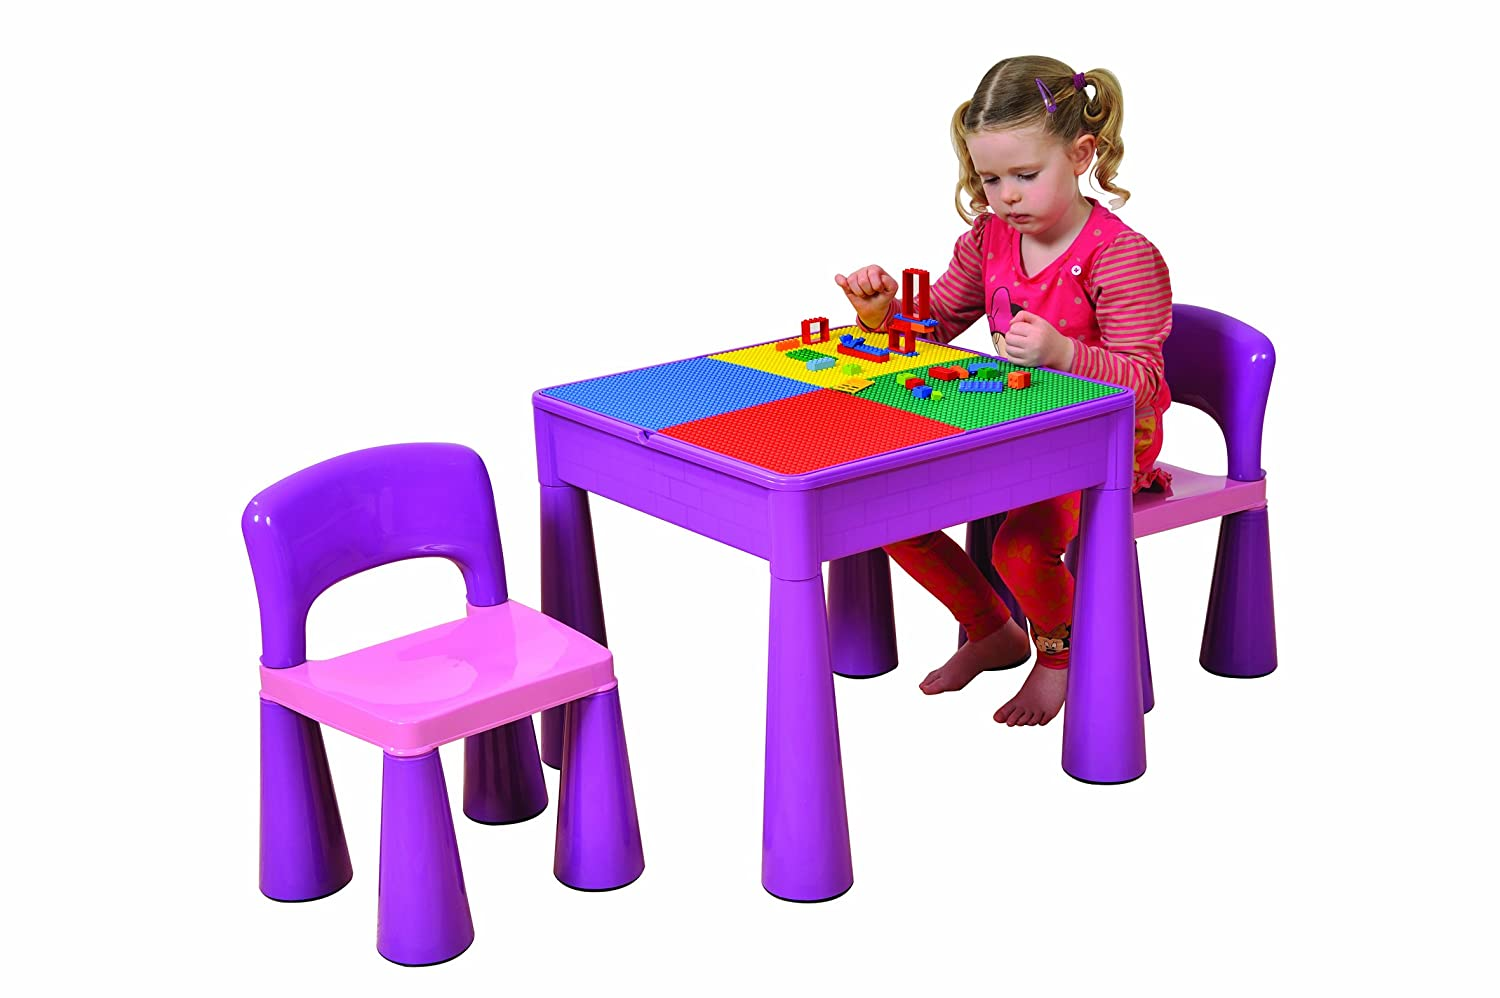 Liberty House 5 In 1 Activity Table U0026 Chairs With Writing Top/Lego/Sand/Water/Storage,  Violet: Amazon.co.uk: Kitchen U0026 Home